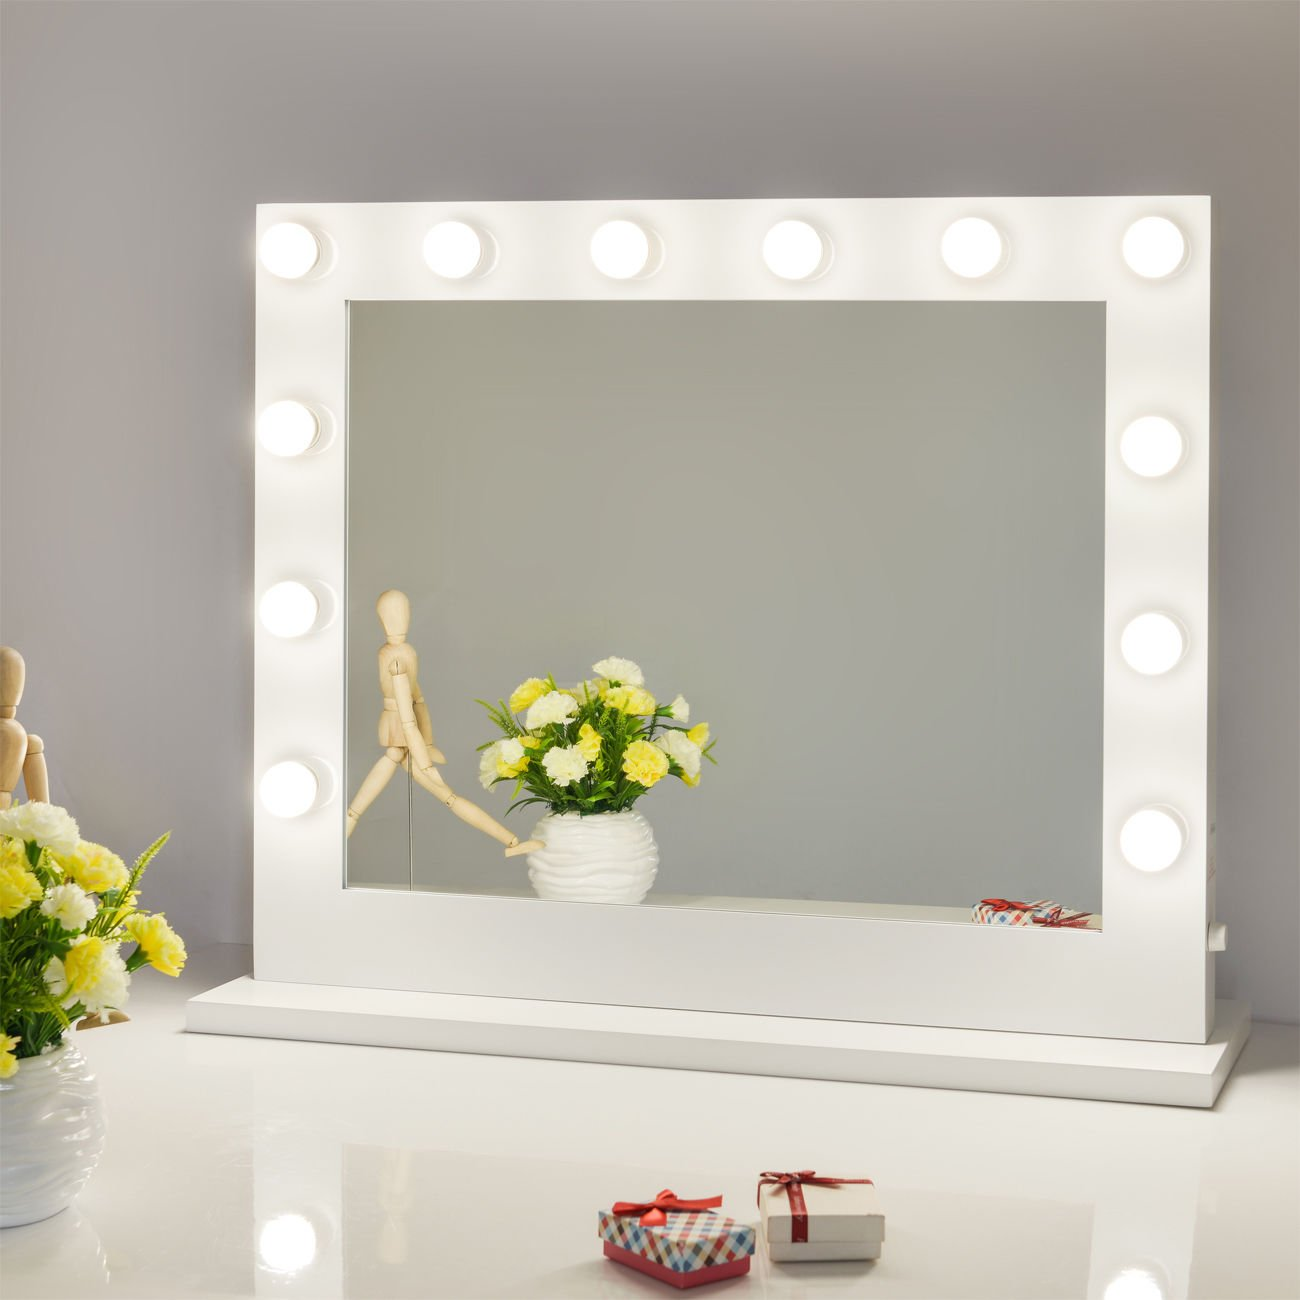 Amazon com  Chende White Hollywood Lighted Makeup Vanity Mirror Light Dressing Table Set Mirrors with Dimmer Tabletop or Wall Mounted